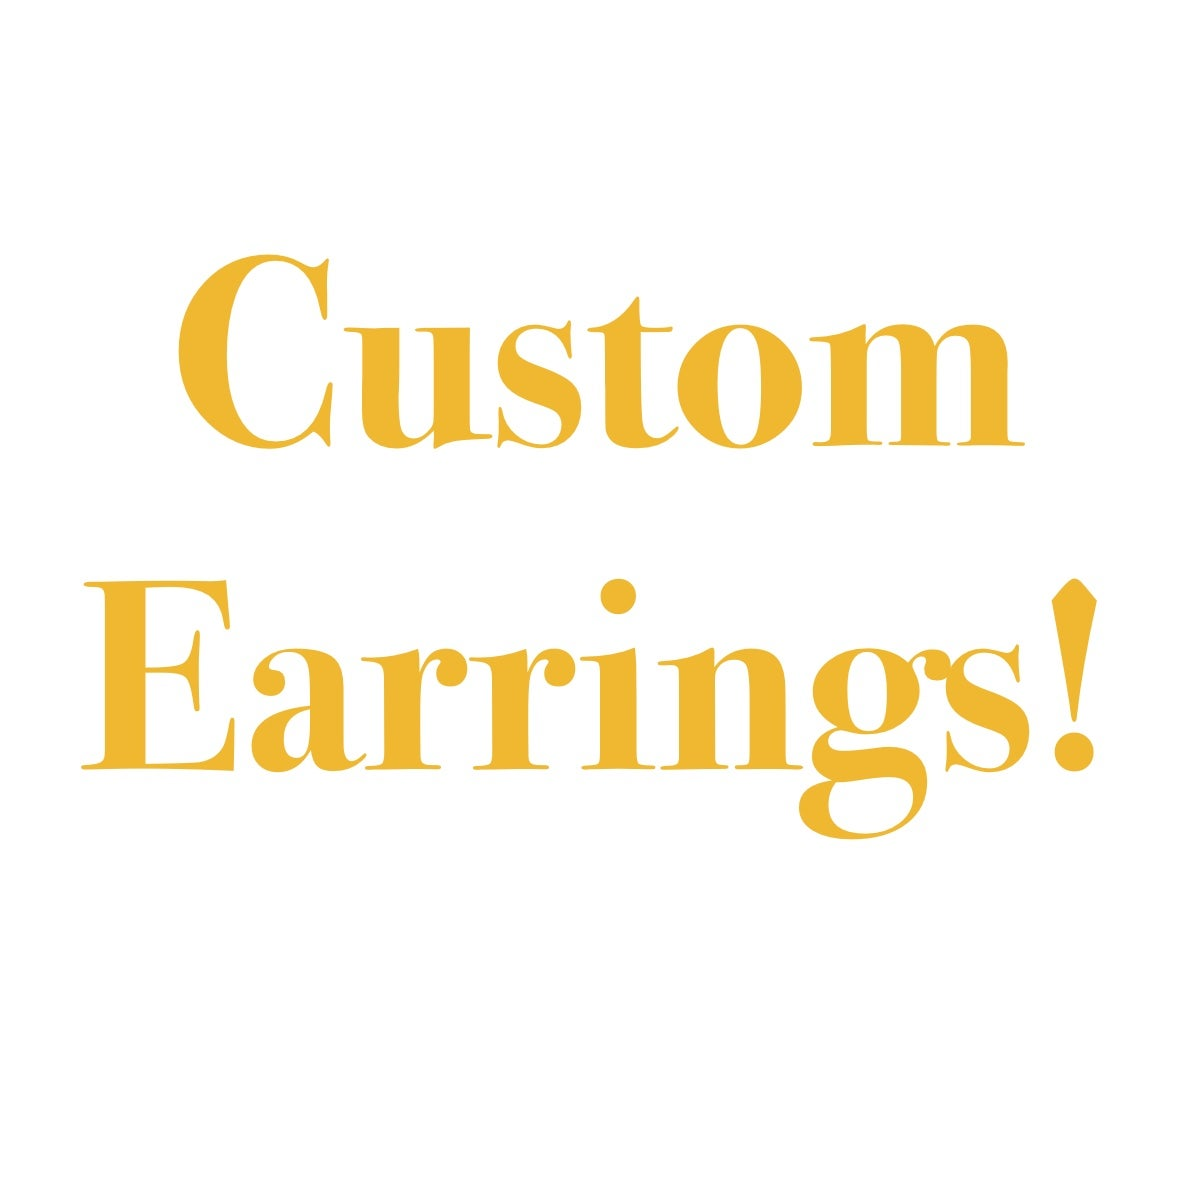 Image of Customized Earrings